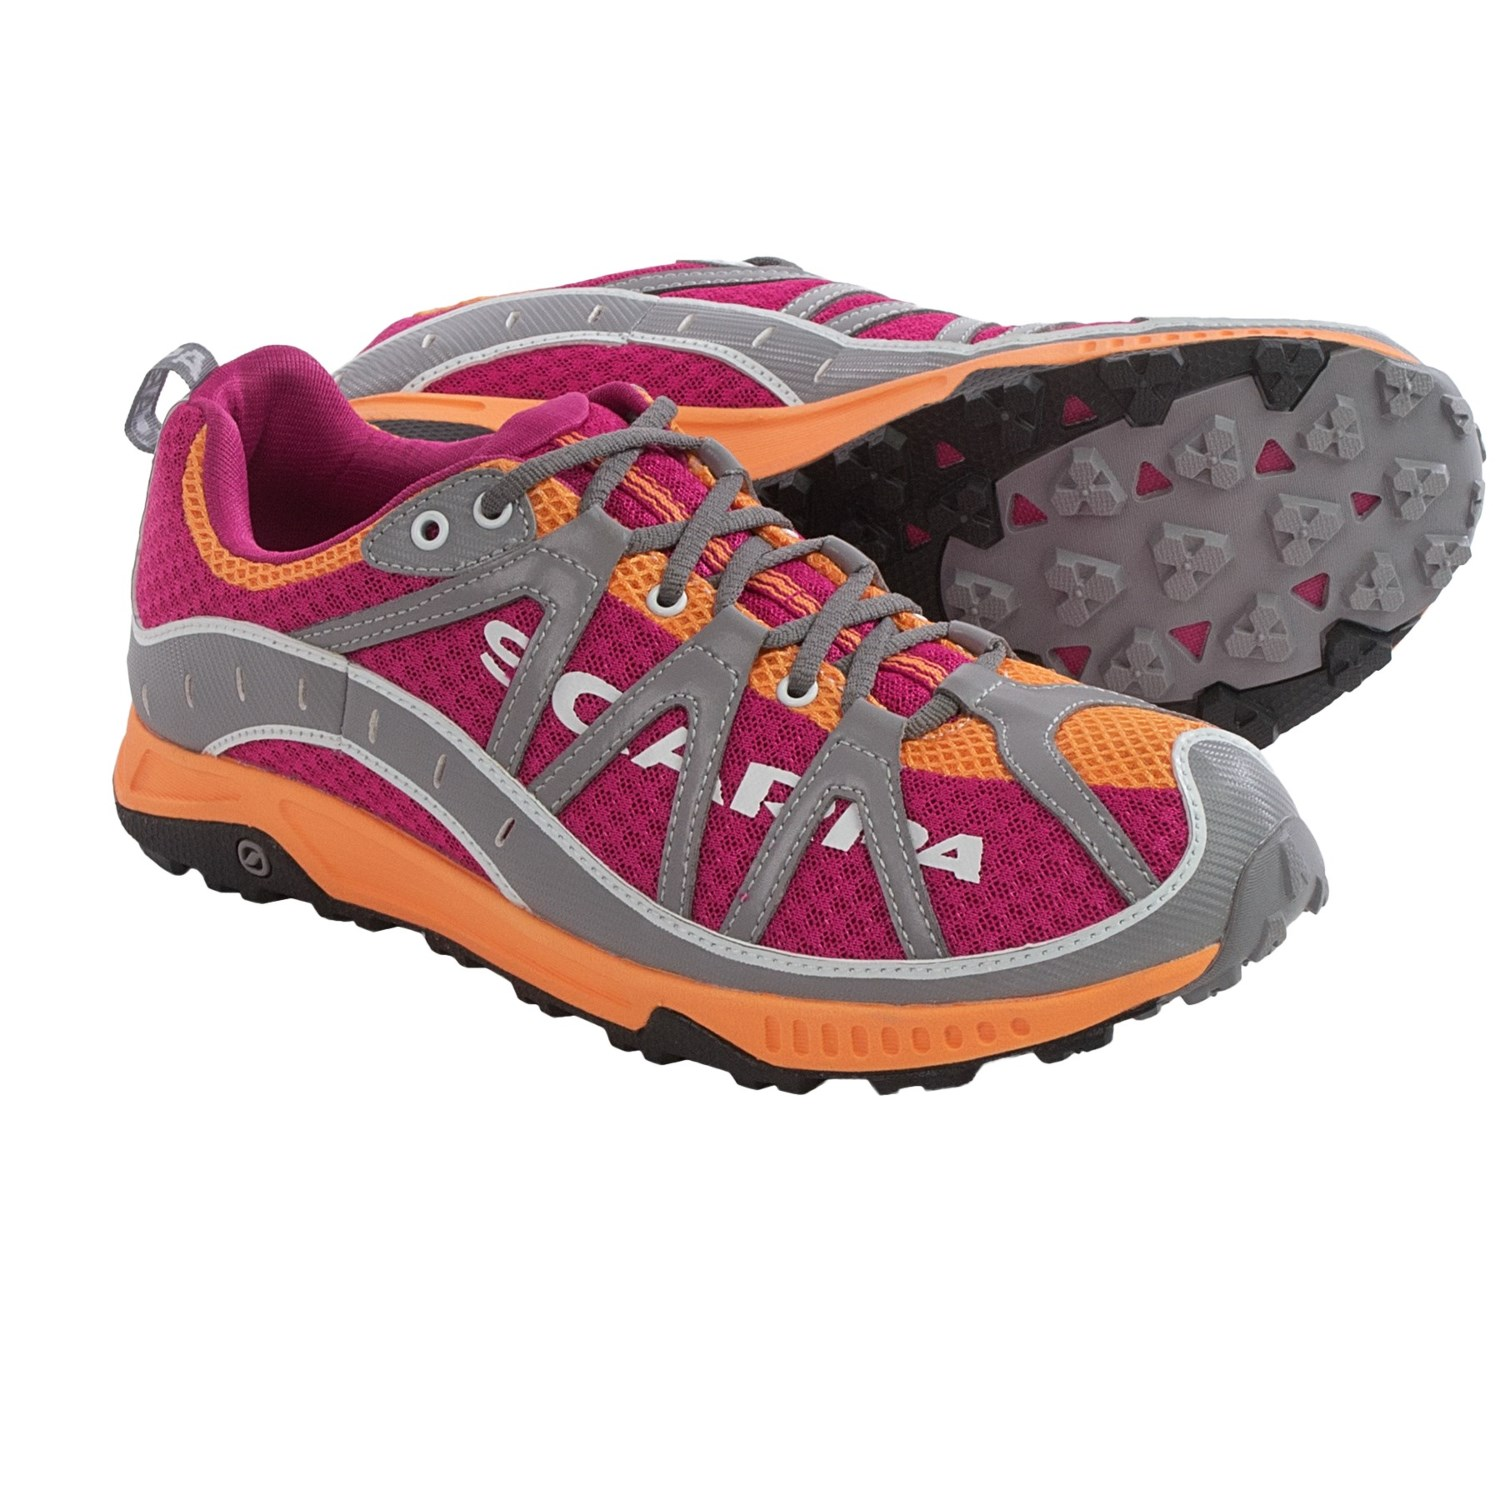 Scarpa Spark Running Shoes